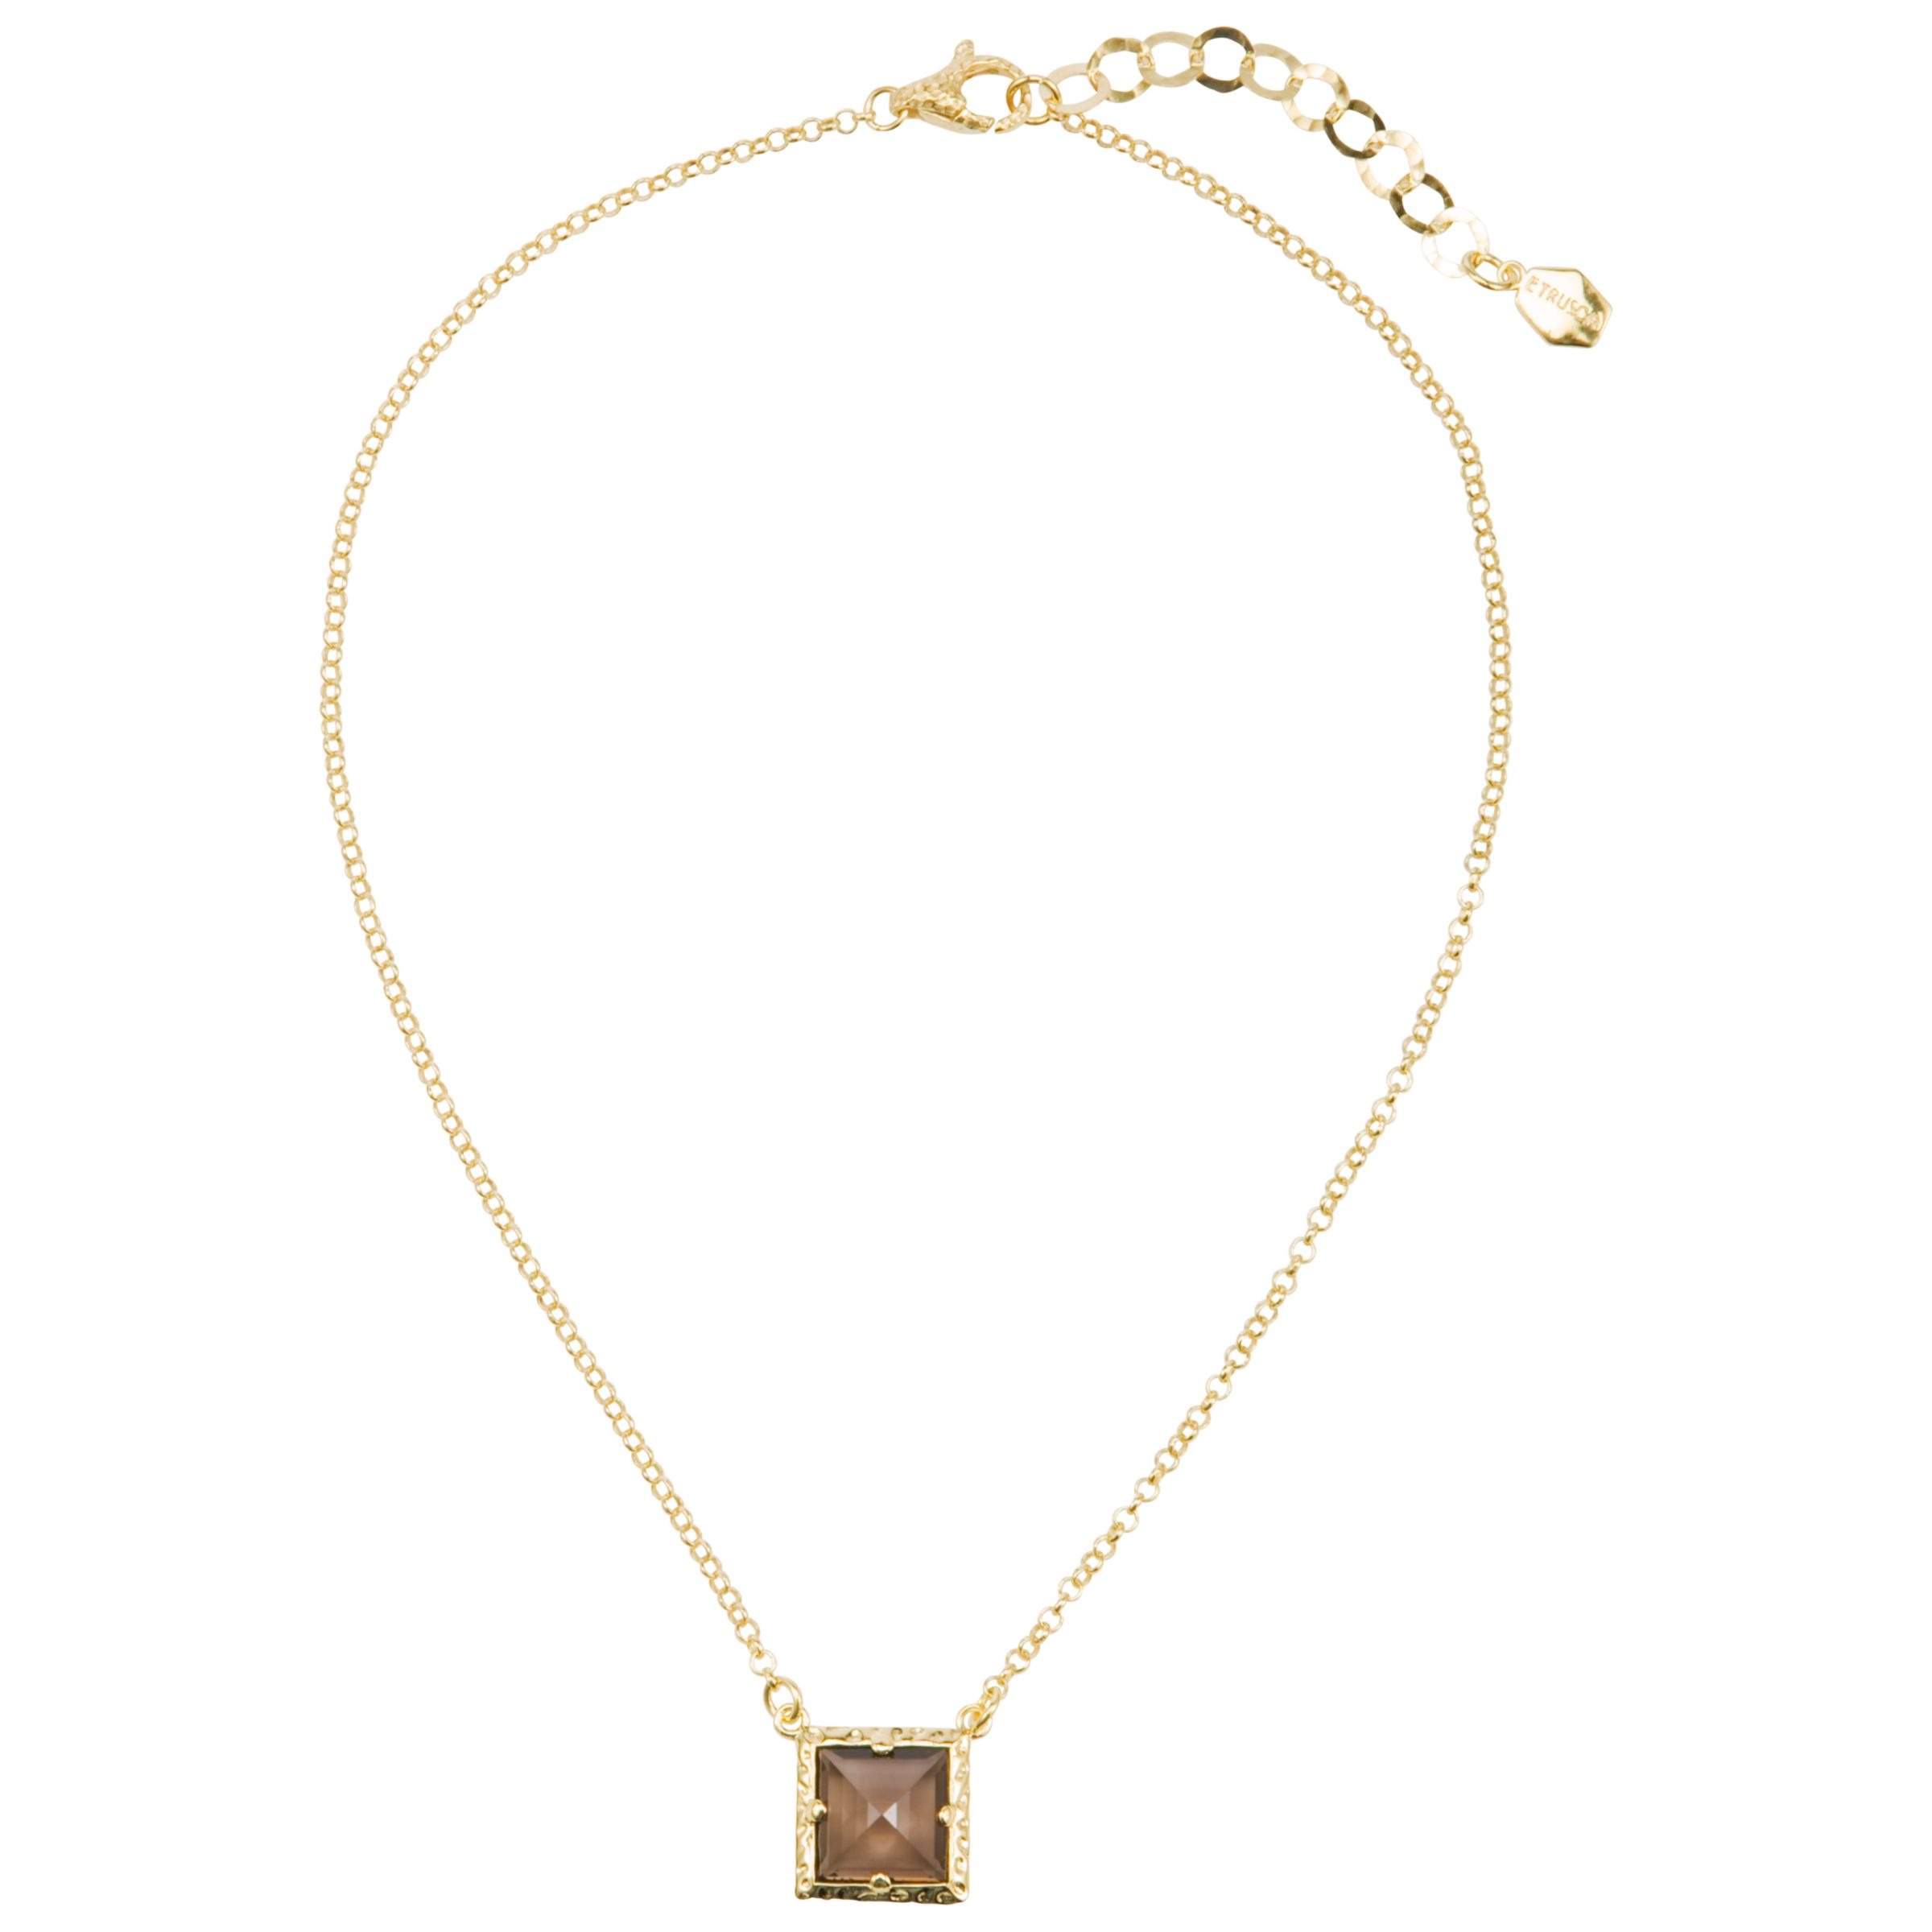 Etrusca 18ct Gold Plated Square Gemstone Pendant Necklace, Gold